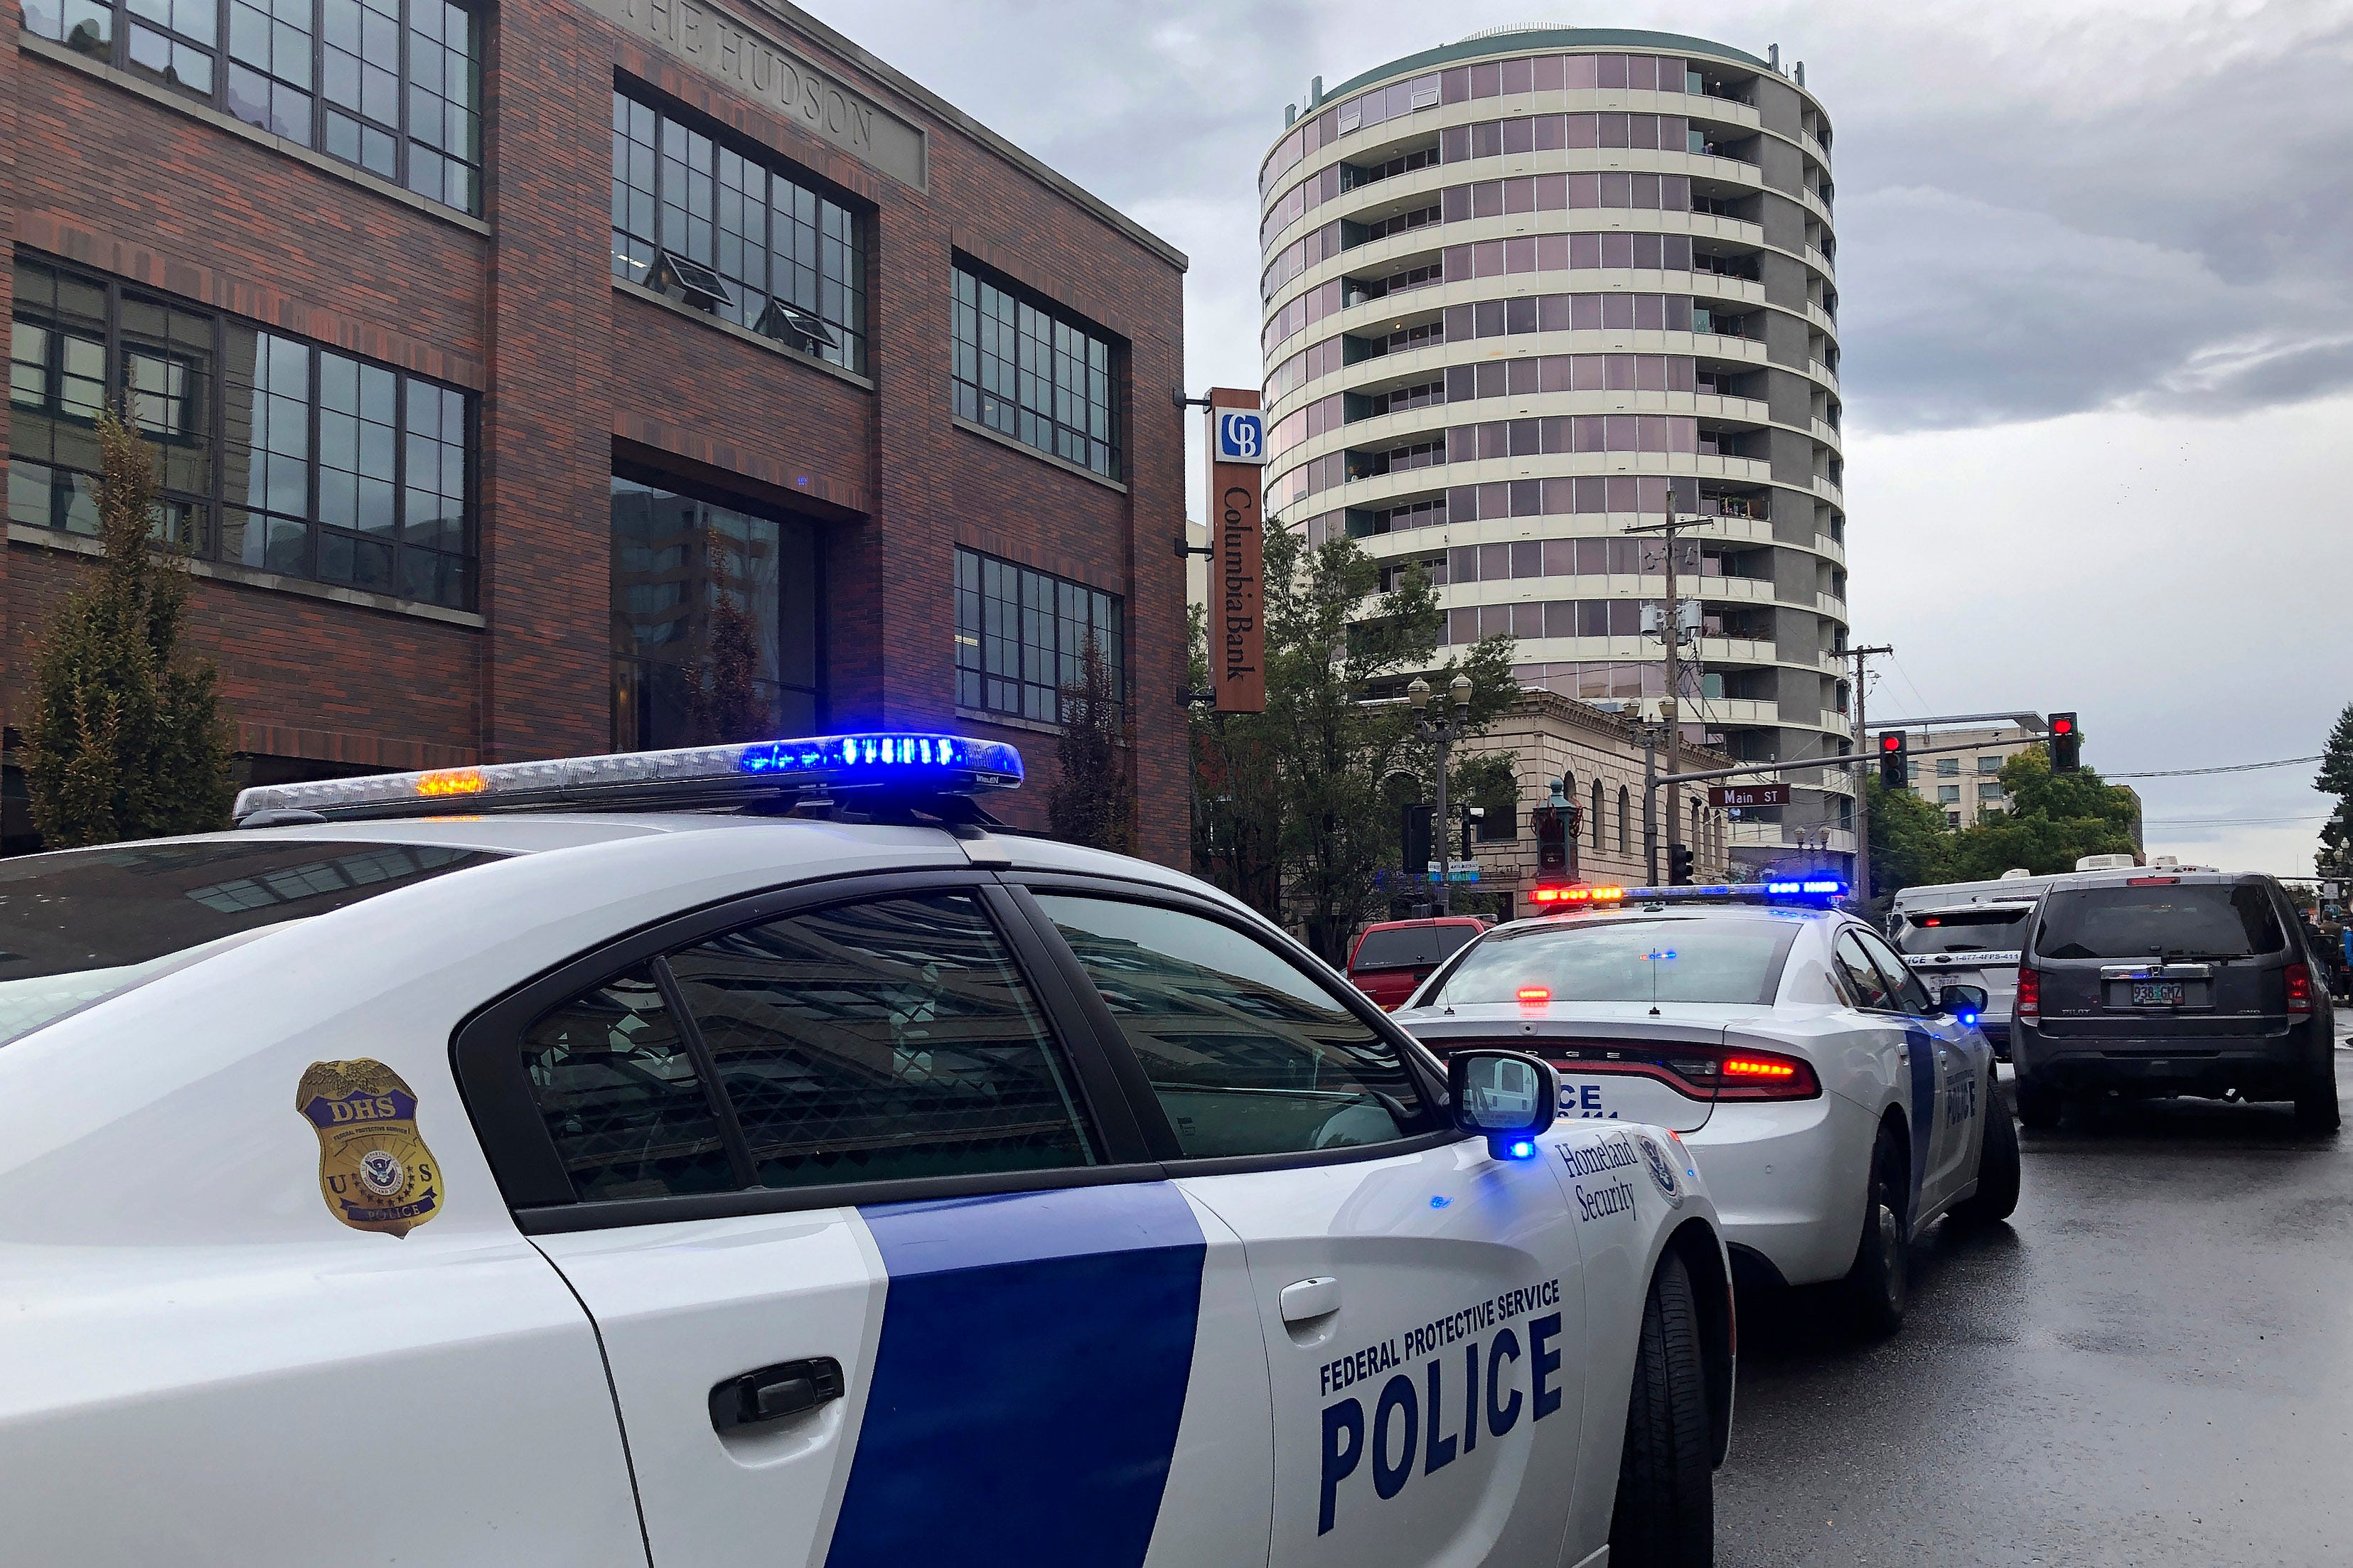 Breaking news: 1 dead, 2 injured in Washington state apartment building shooting